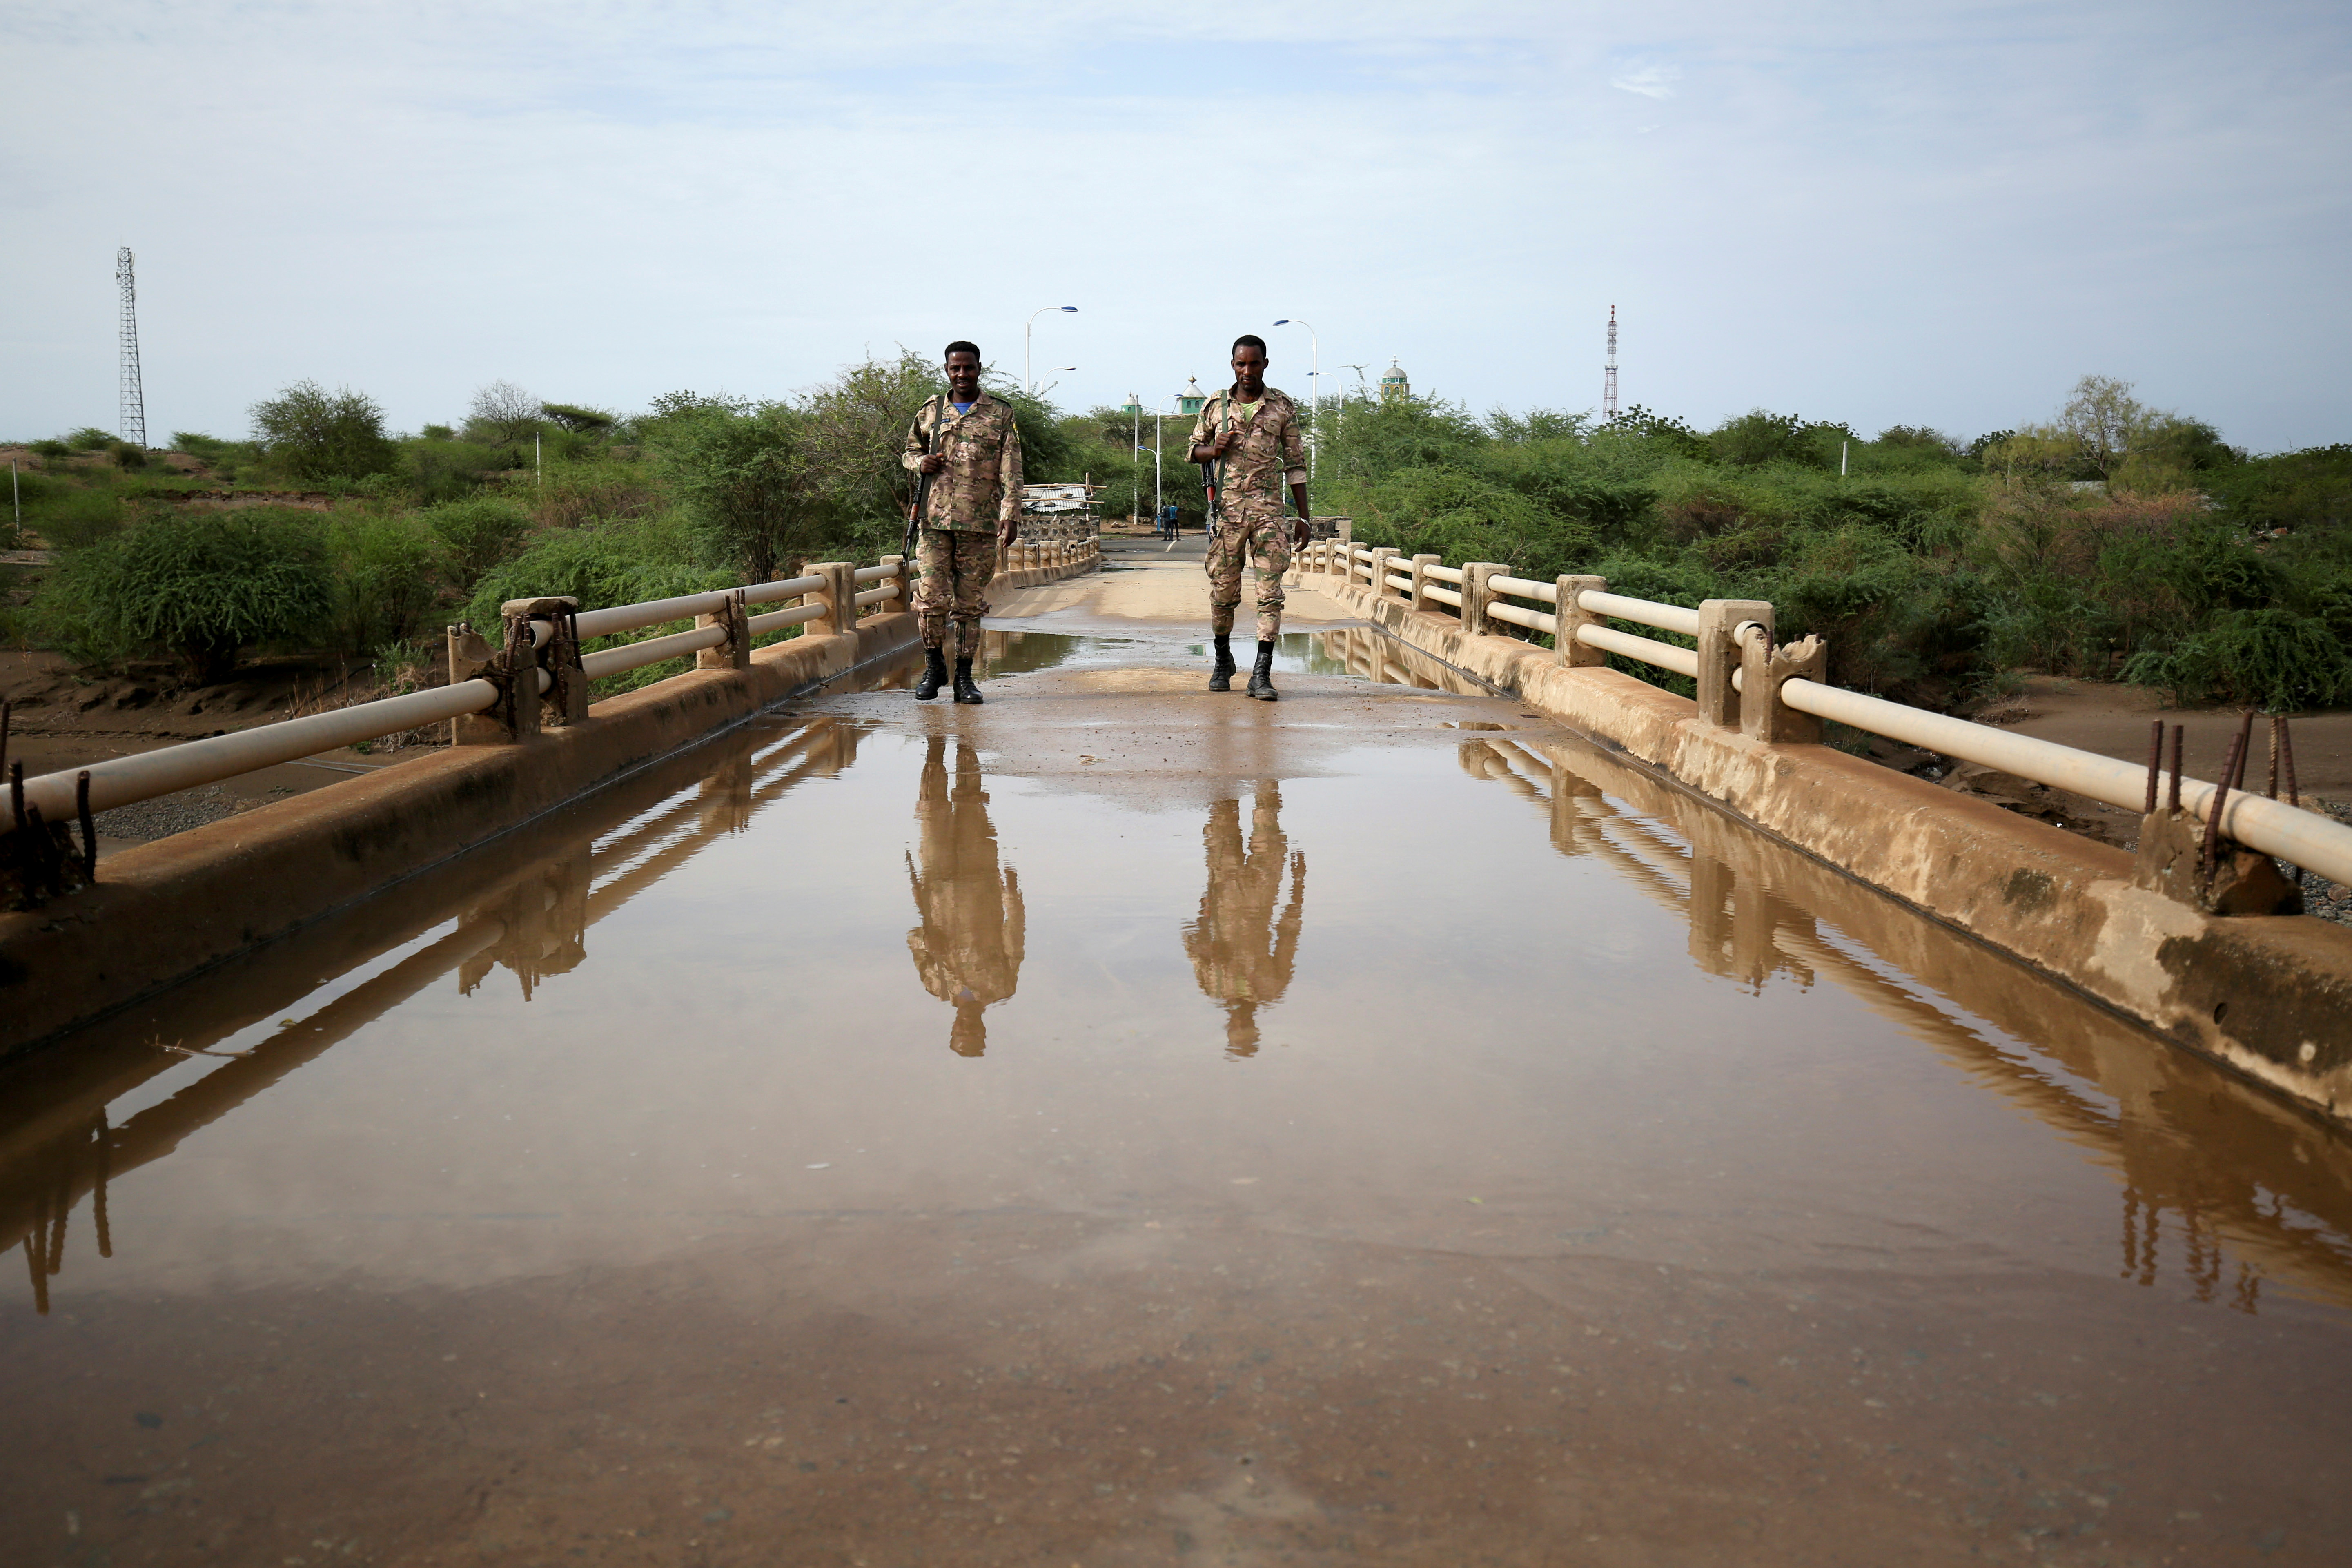 Members of Amhara special forces stand guard on the Tekeze river bridge near Ethiopia-Eritrean border near the town of Humera, Ethiopia July 1, 2021. REUTERS/Stringer/File Photo